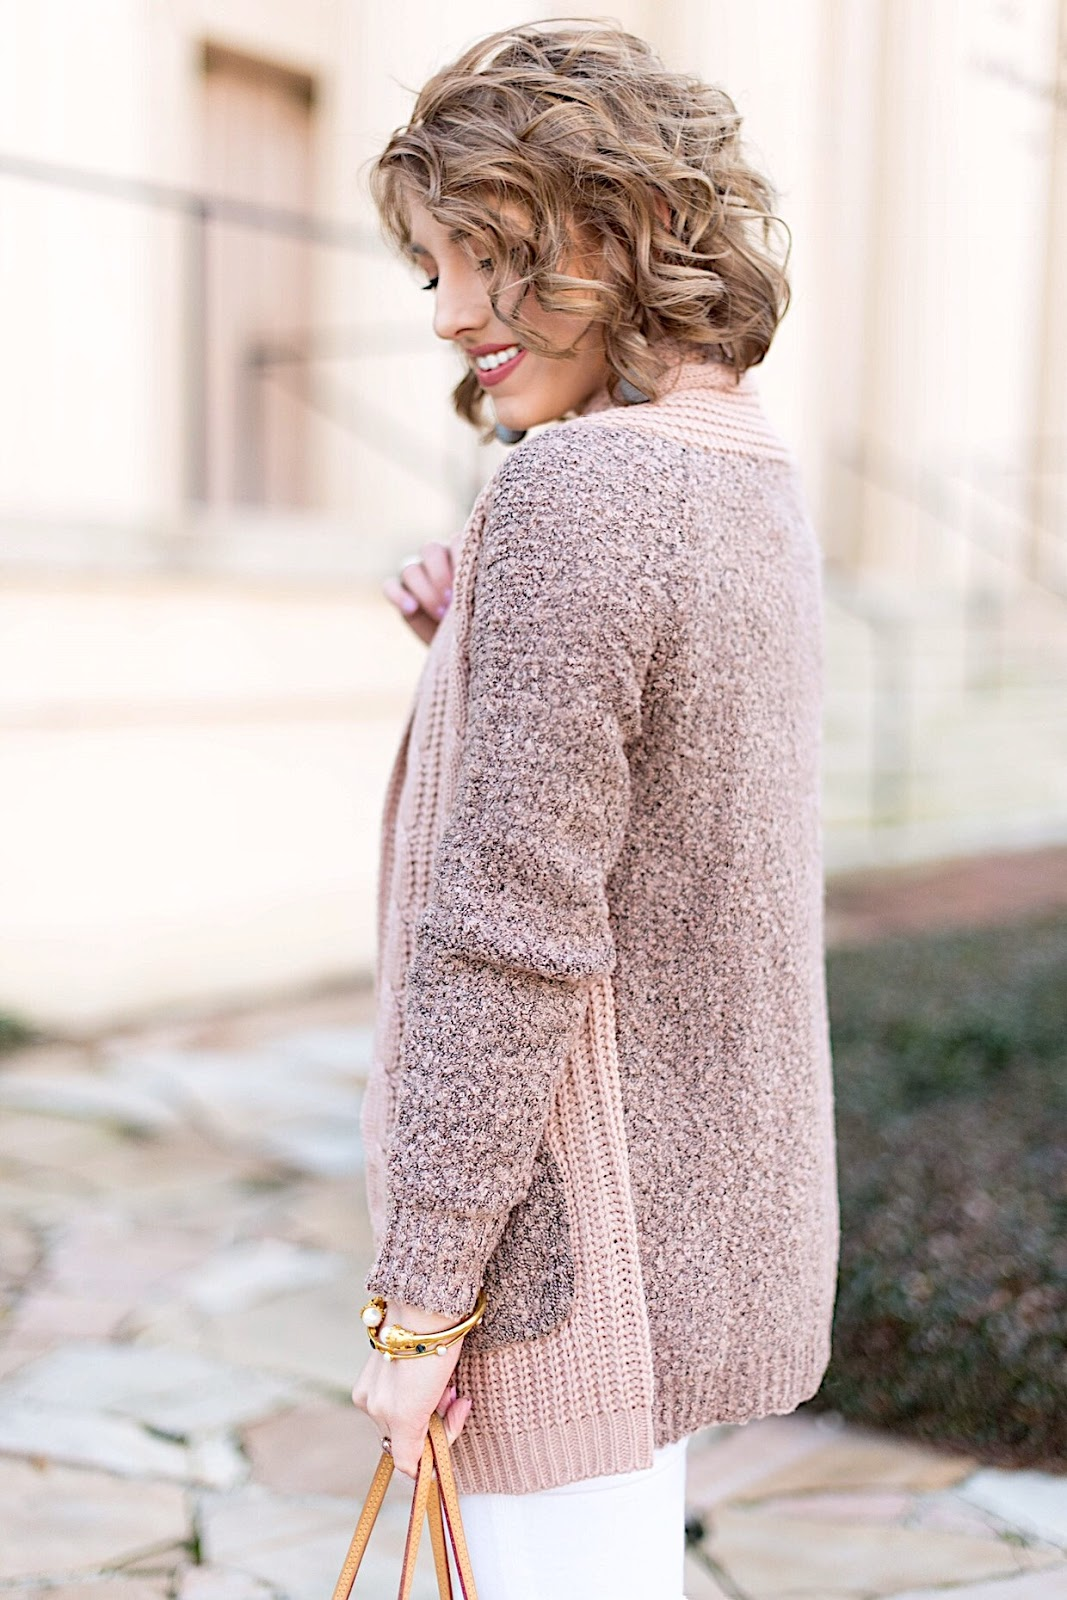 Mix Knit Cardigan (Under $60) - Click through for the full post on Something Delightful Blog!